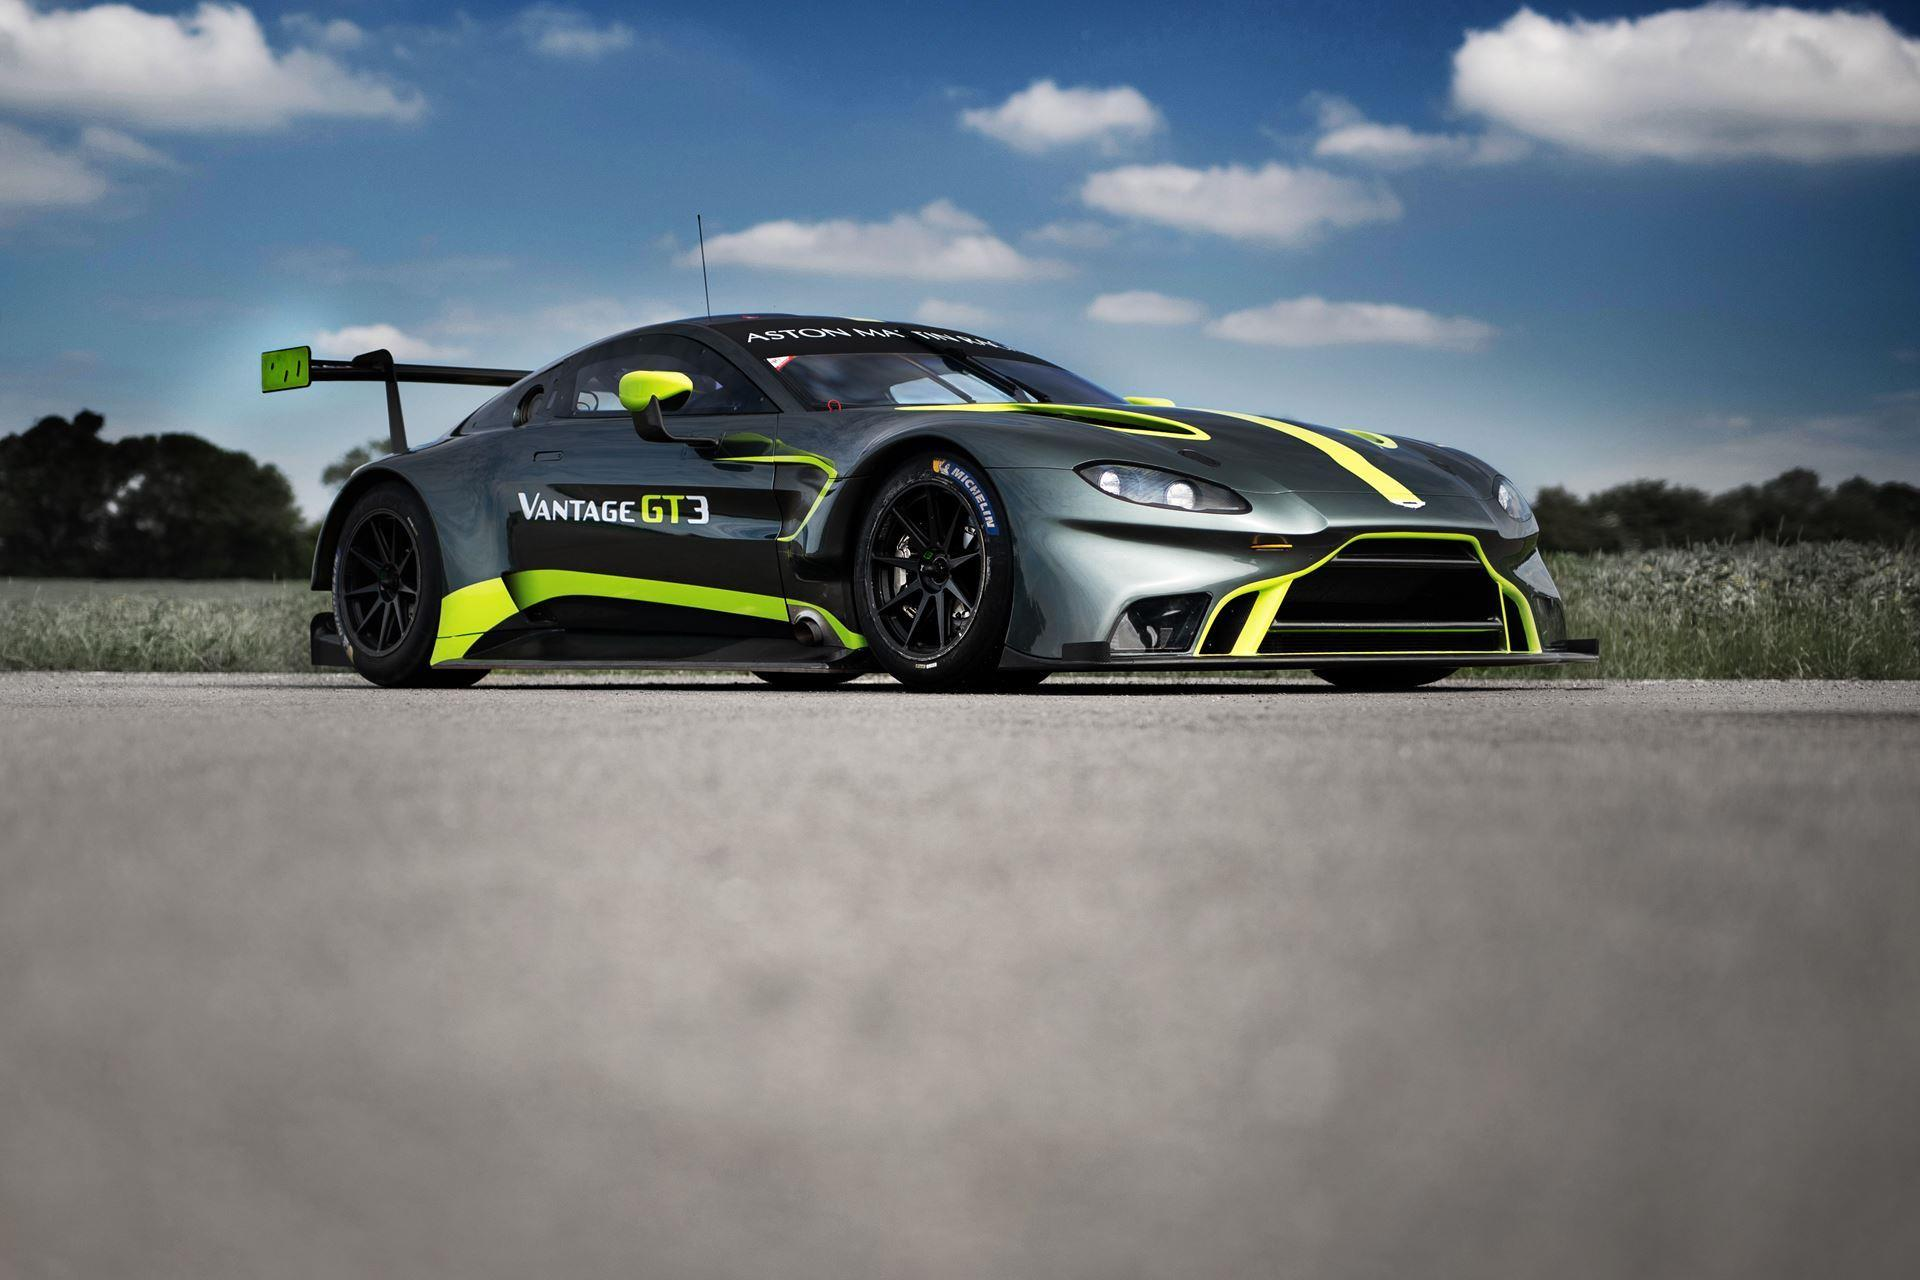 2018 Aston Martin Vantage Gt3 News And Information Research And Pricing